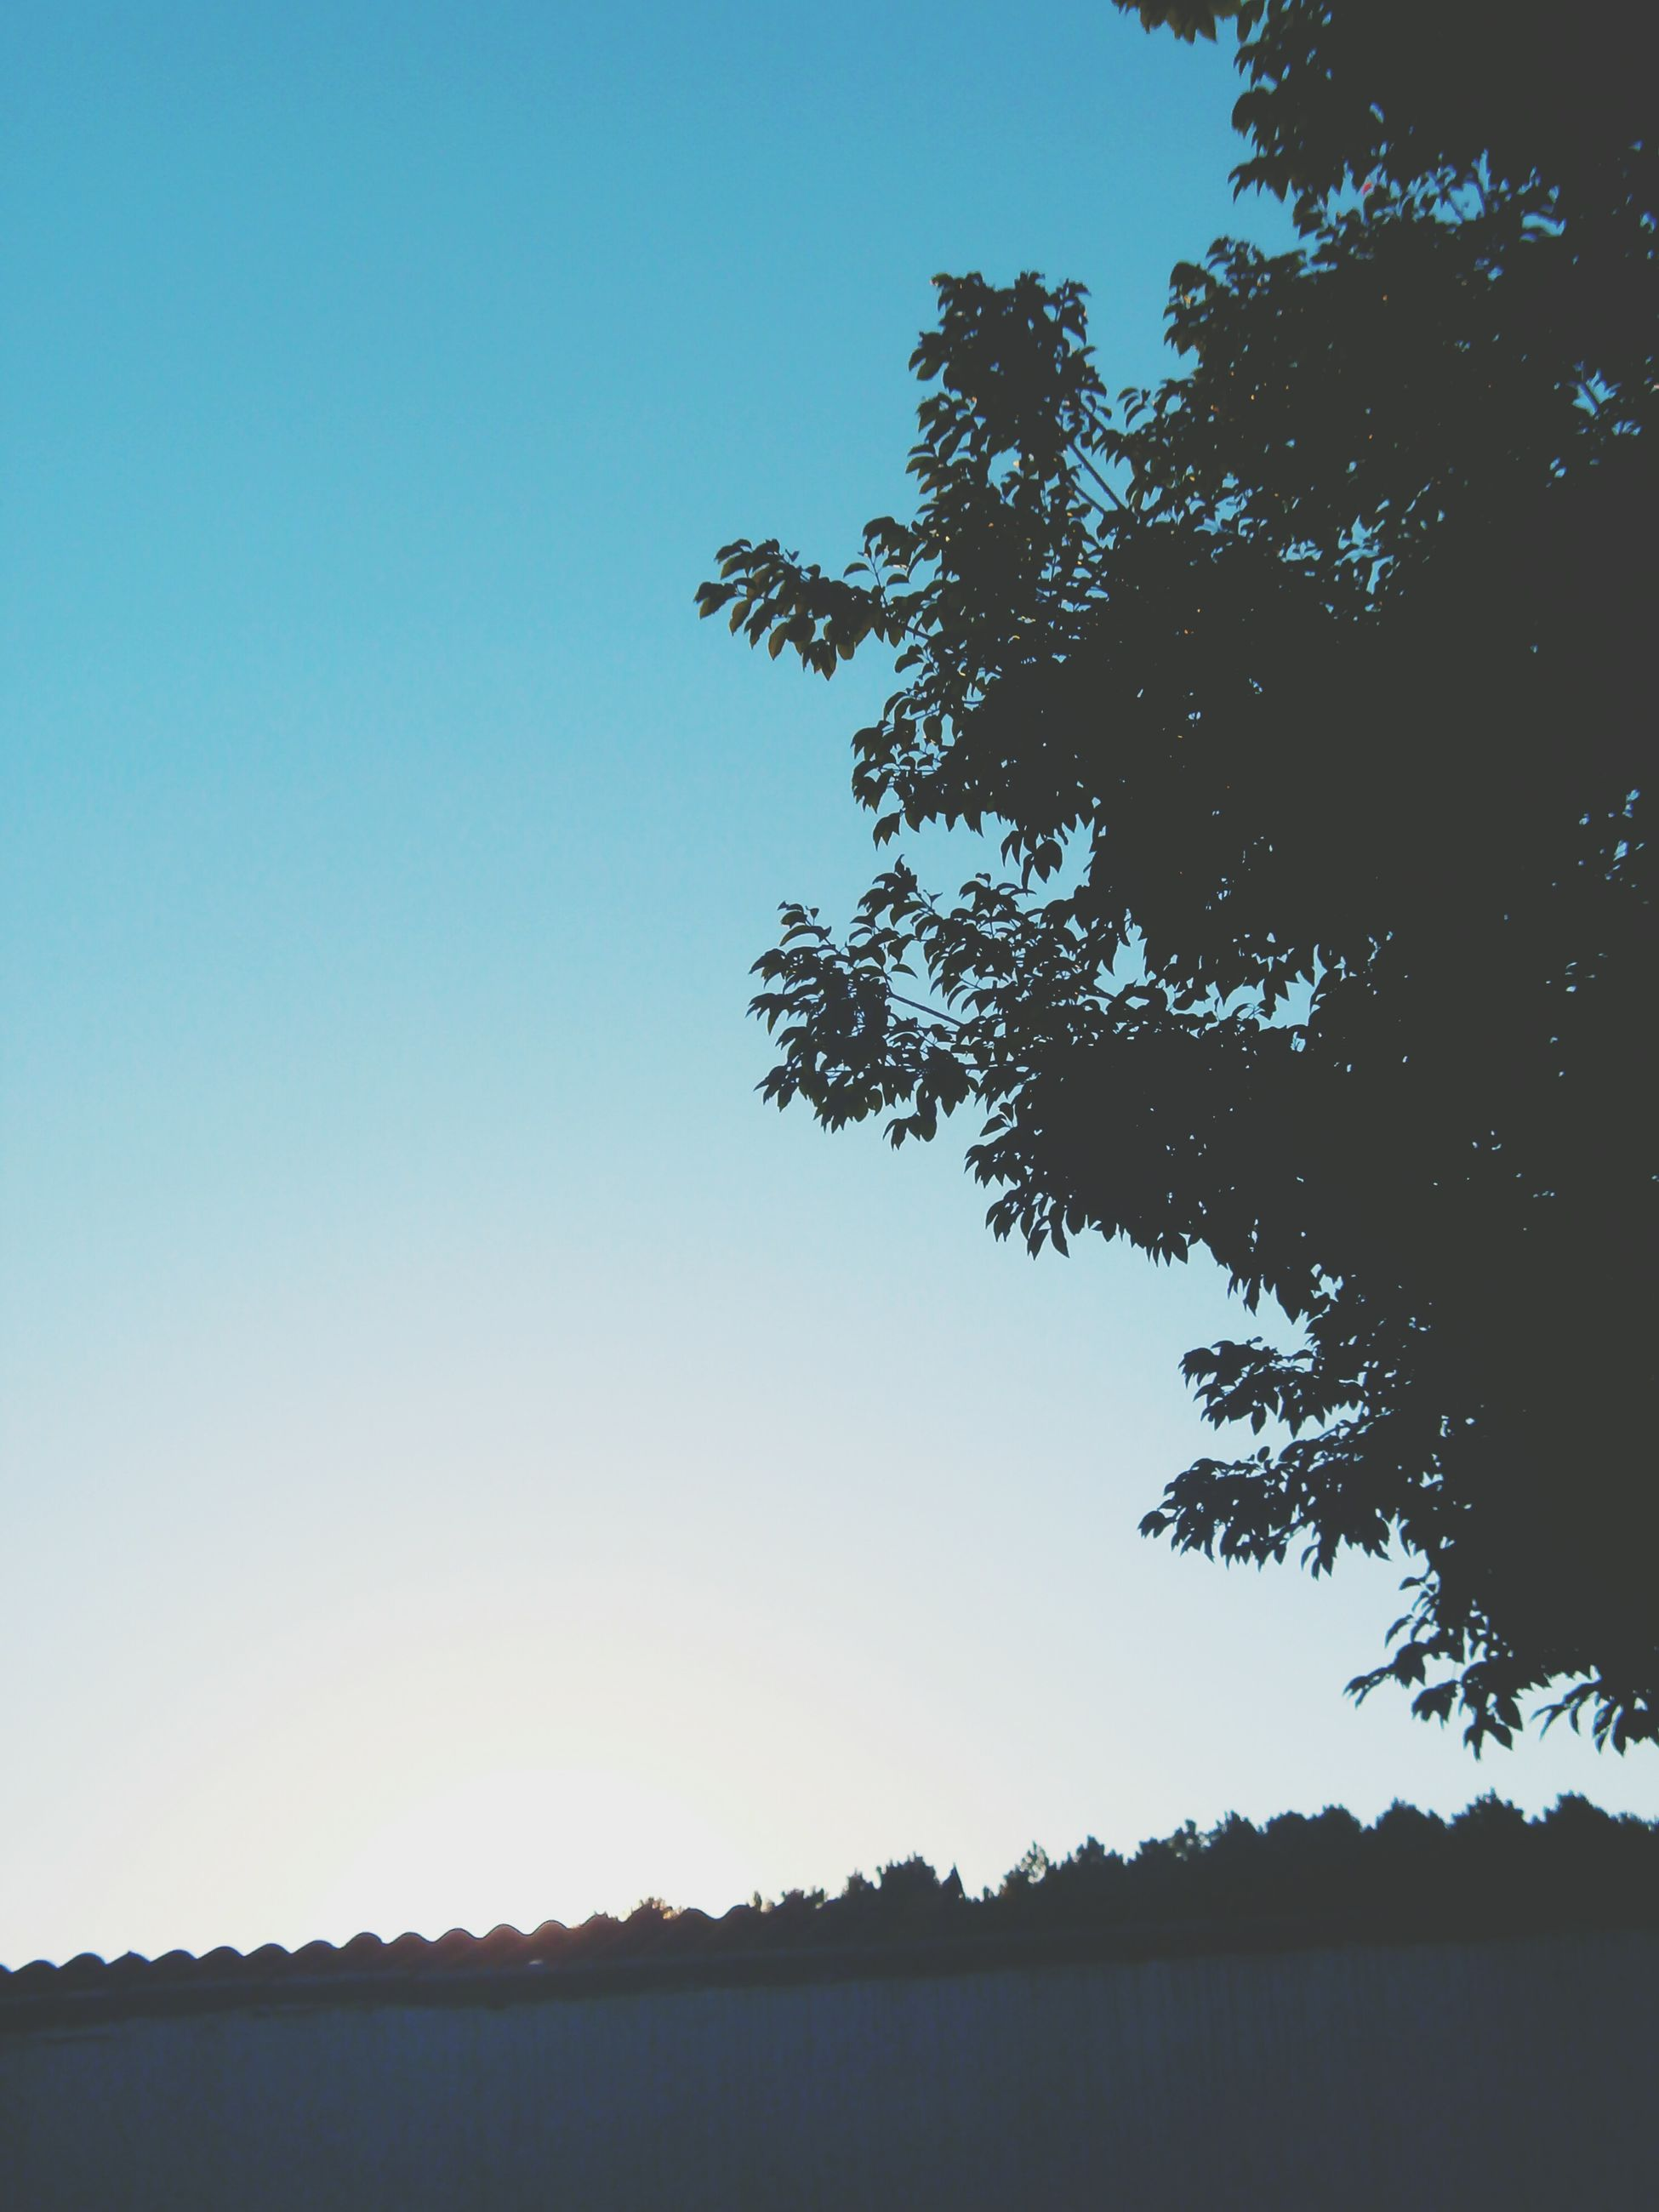 clear sky, copy space, tree, tranquility, tranquil scene, silhouette, scenics, beauty in nature, blue, nature, growth, landscape, branch, water, idyllic, outdoors, no people, dusk, lake, non urban scene